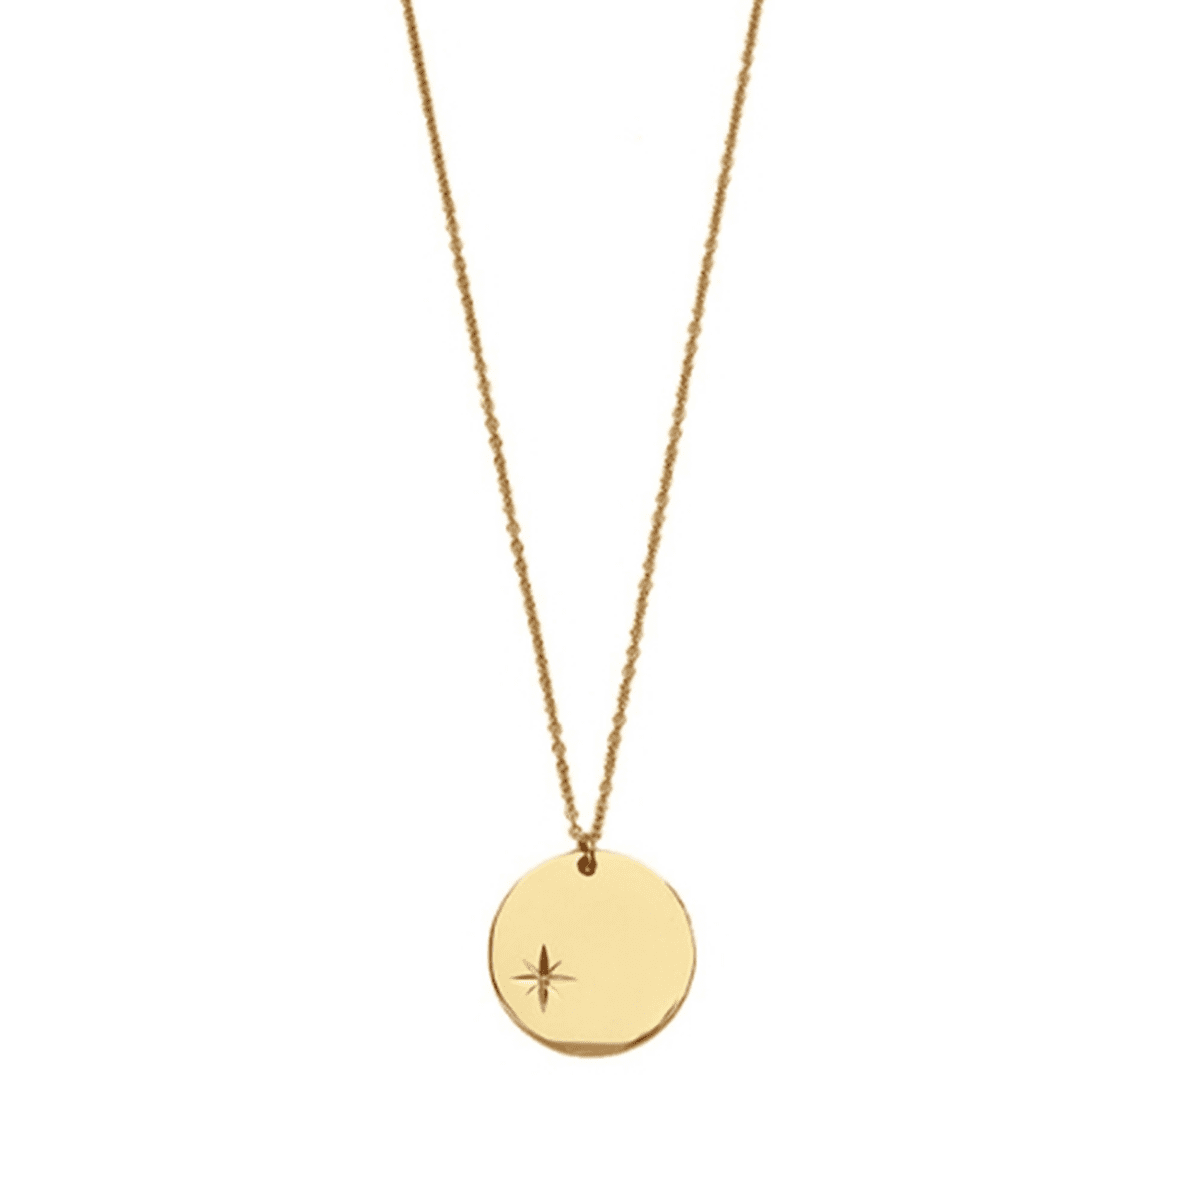 18k Gold-Plated Pendant With Small Polar Star Medal